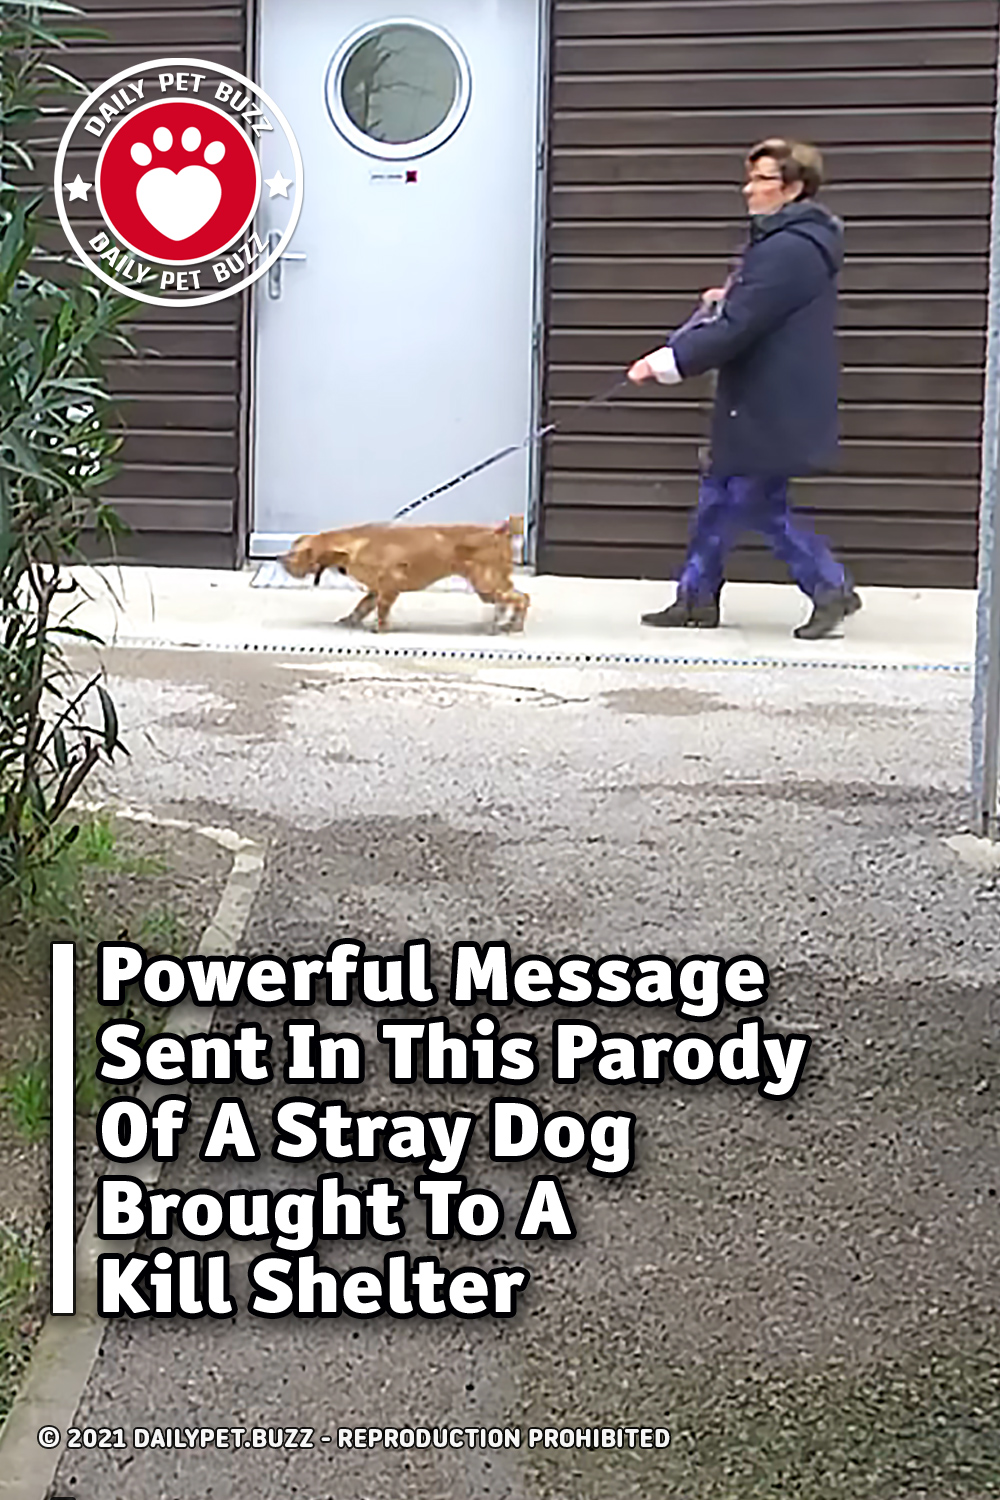 Powerful Message Sent In This Parody Of A Stray Dog Brought To A Kill Shelter